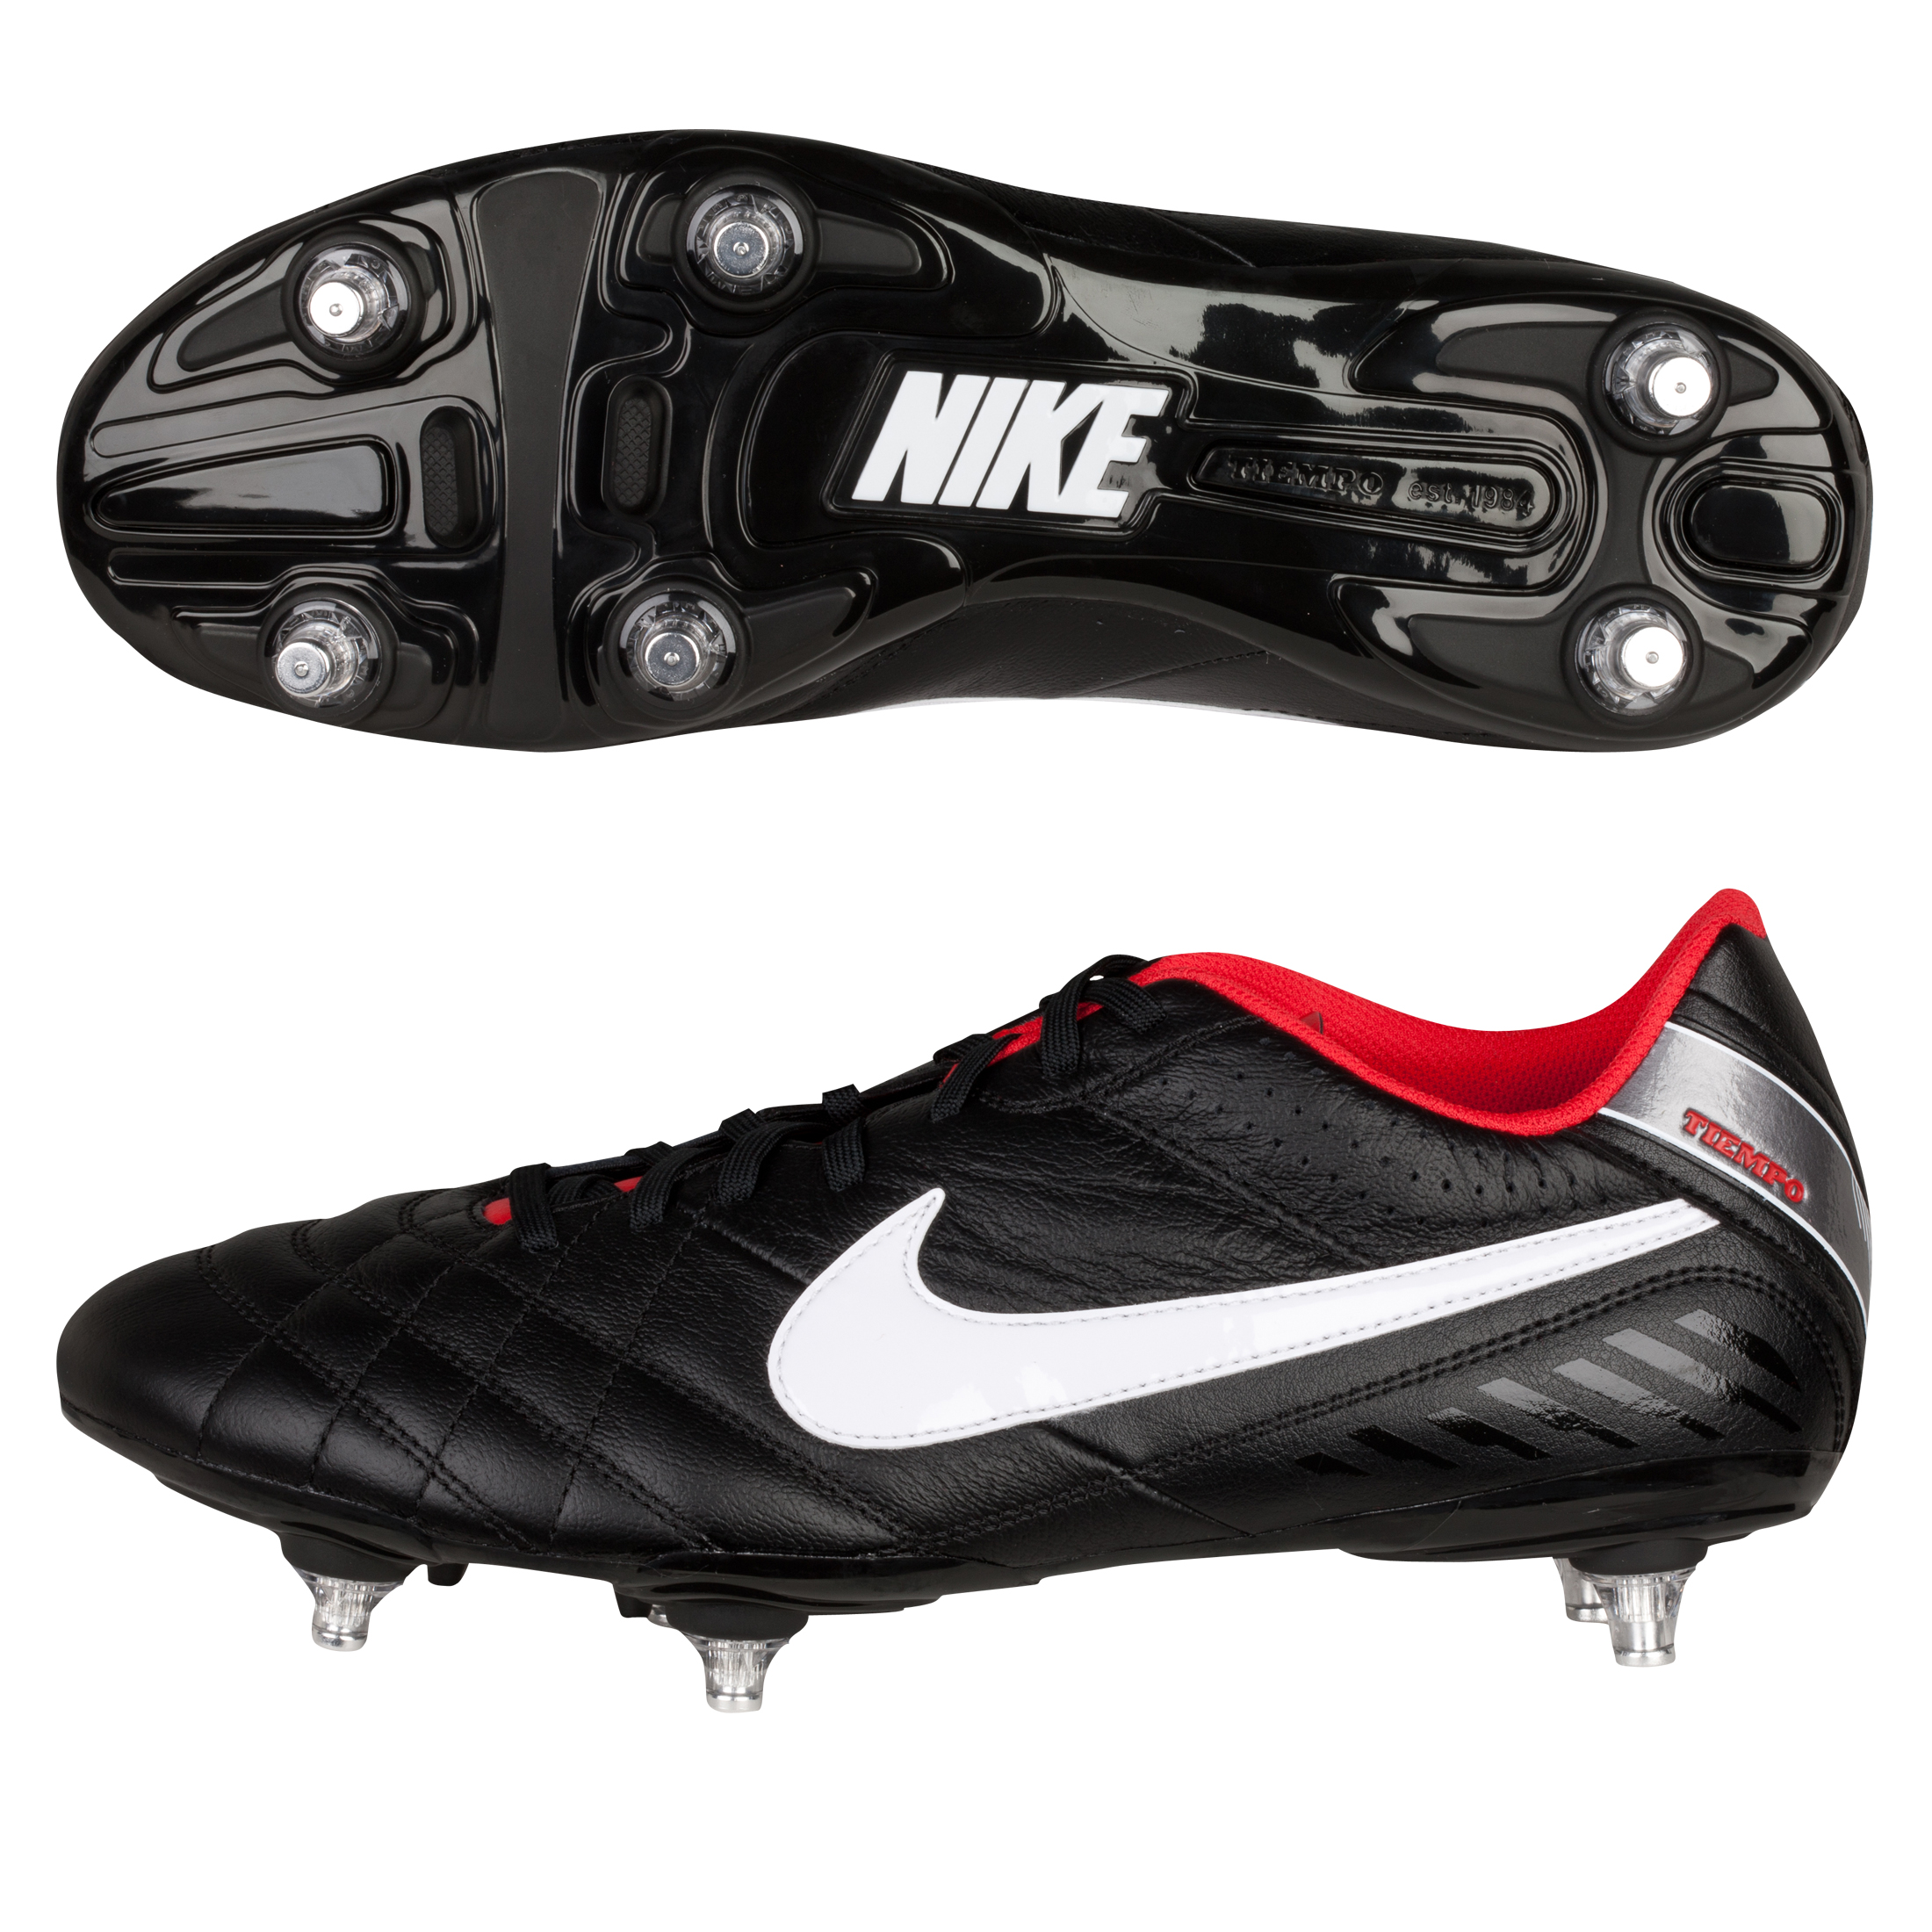 Nike Tiempo Natural IV Soft Ground Football Boots - Black/White/Challenge Red